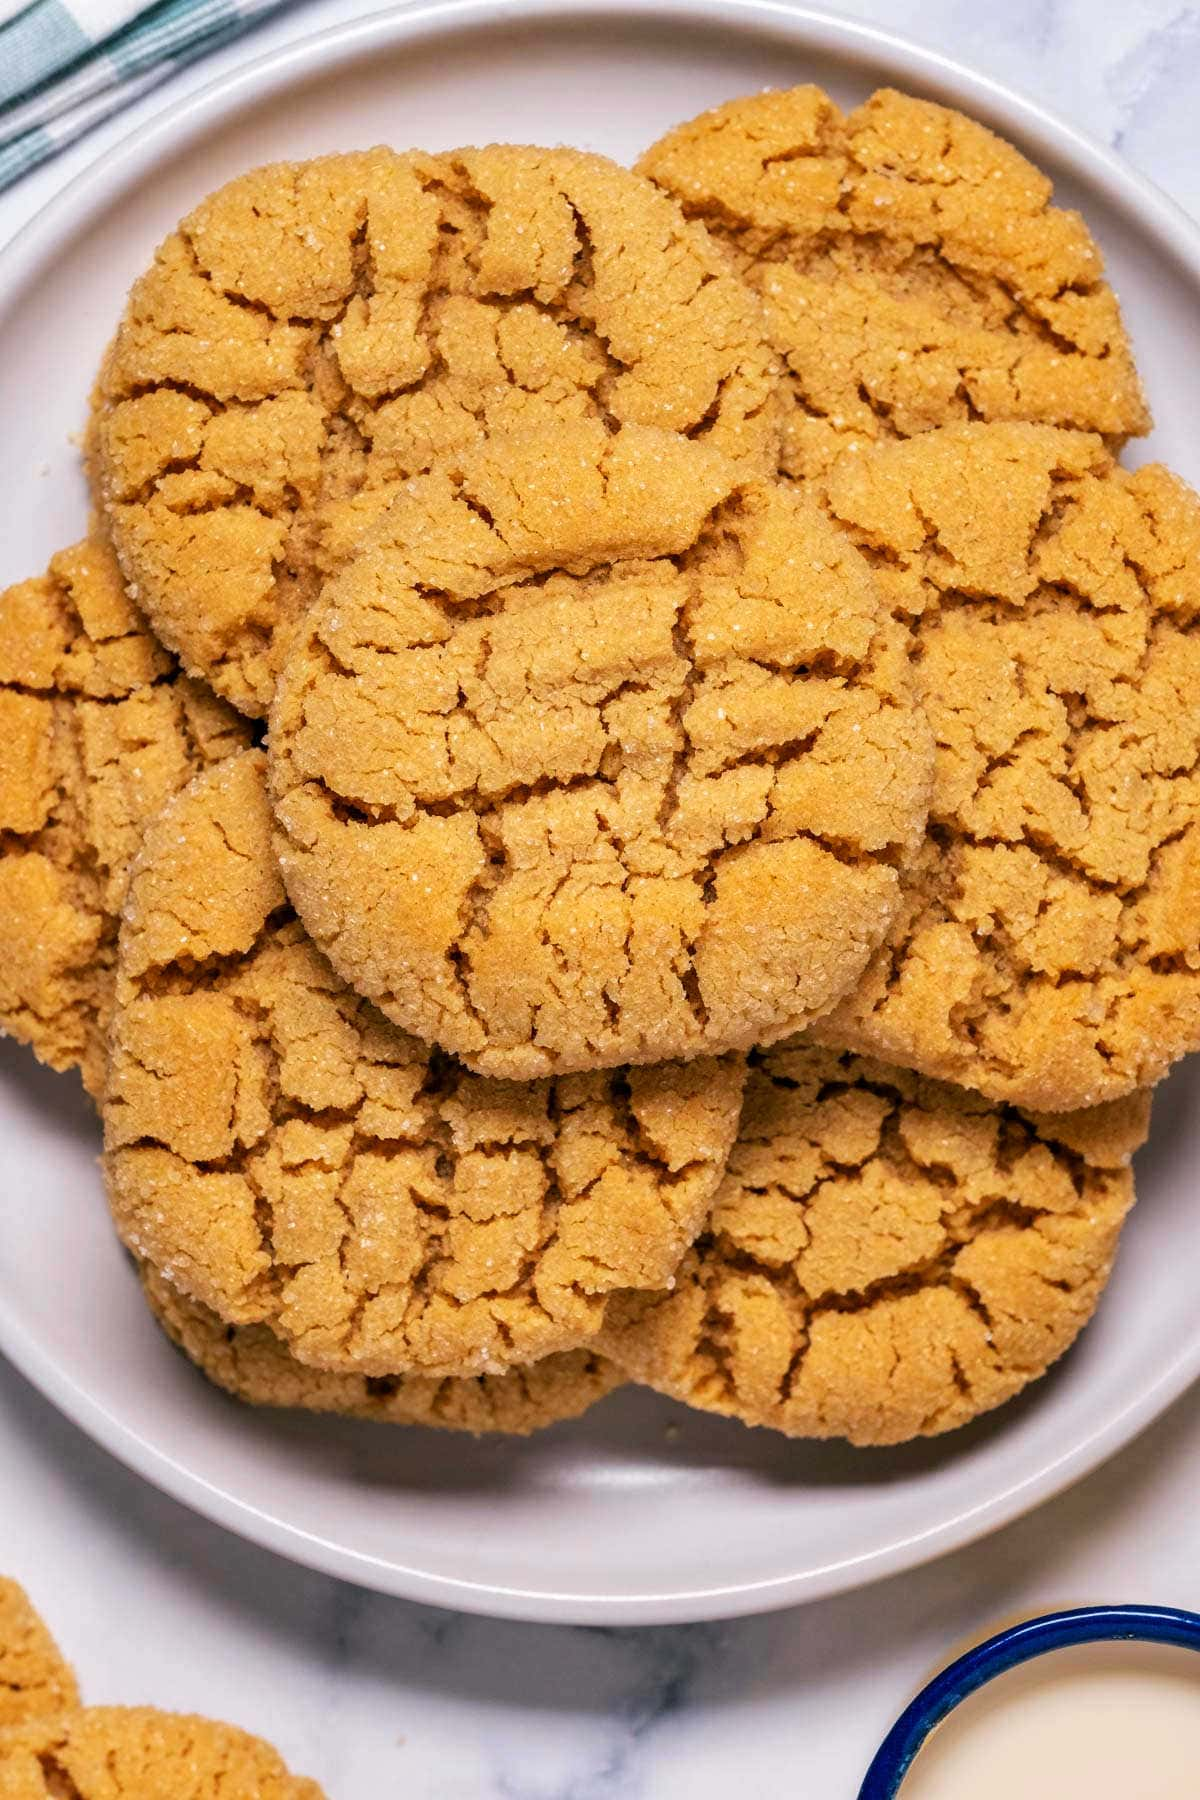 Eggless peanut butter cookies on a white plate.